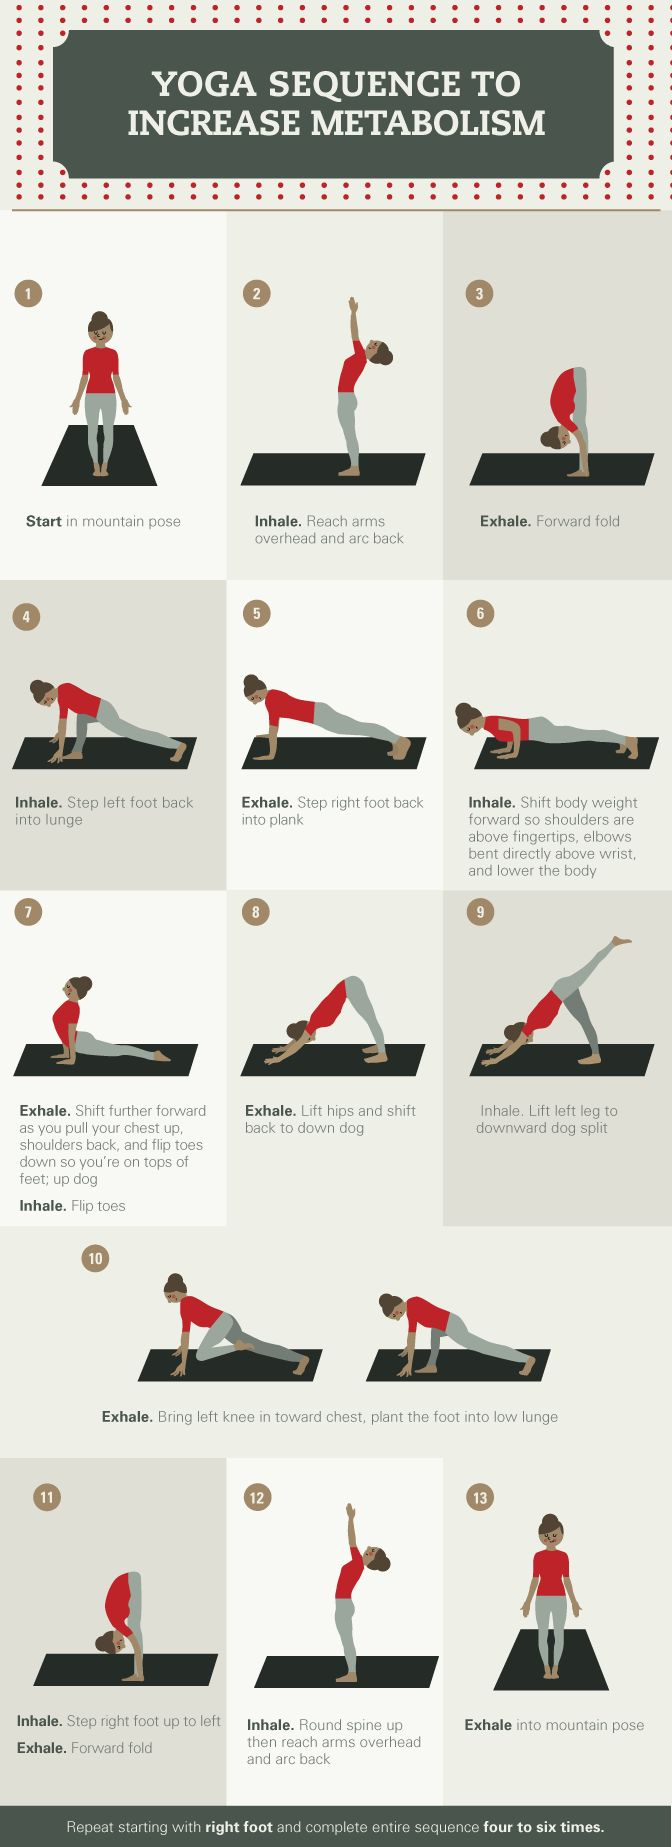 A typical sun salutation is a great way for the body to get moving, and increase...